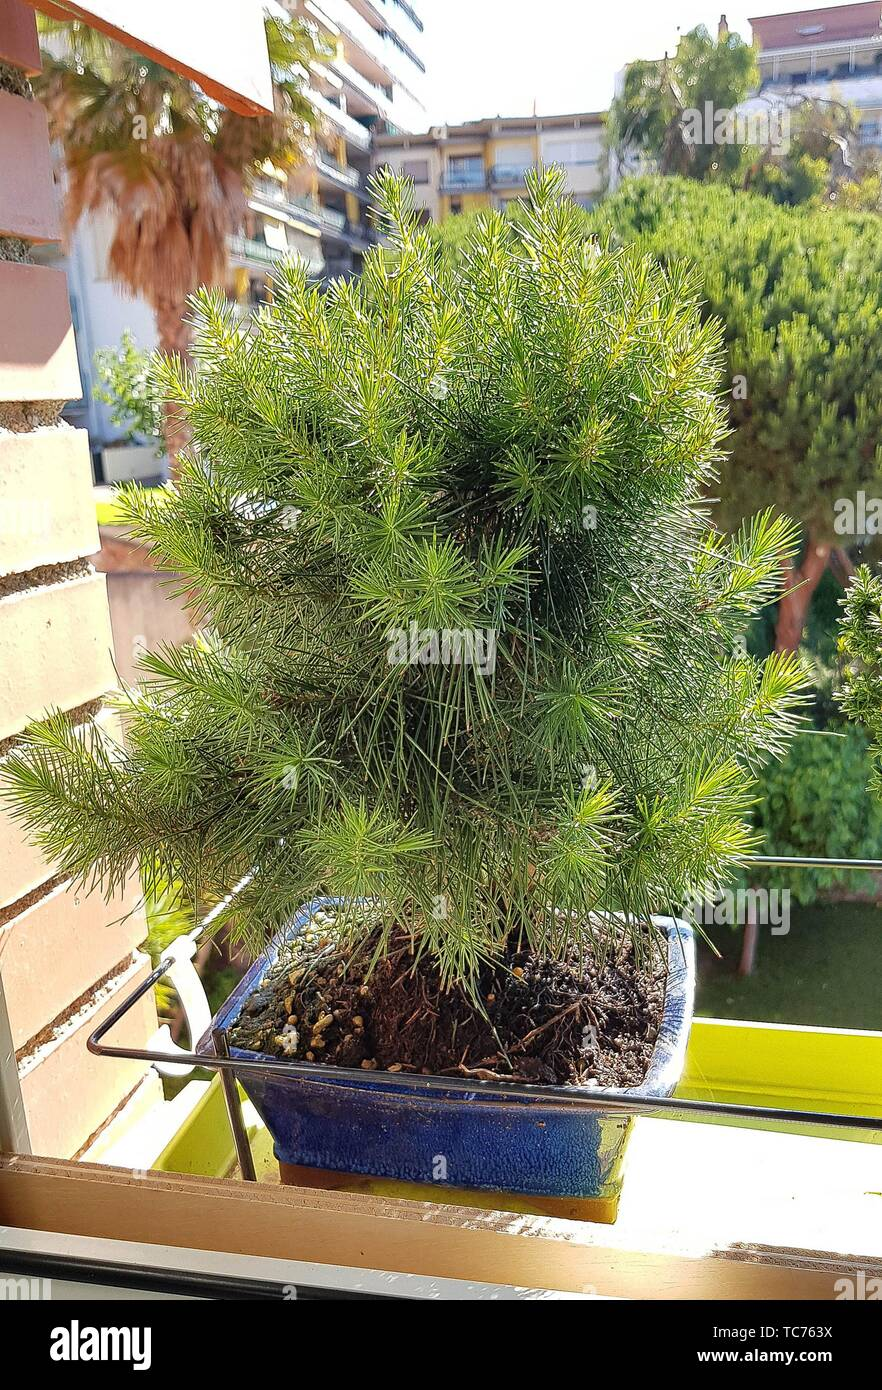 Pinus halepensis (Aleppo Pine). The Aleppo Pine is native to the Mediterranean region, growing from sea level to about 200 meter. It is closely - Stock Image